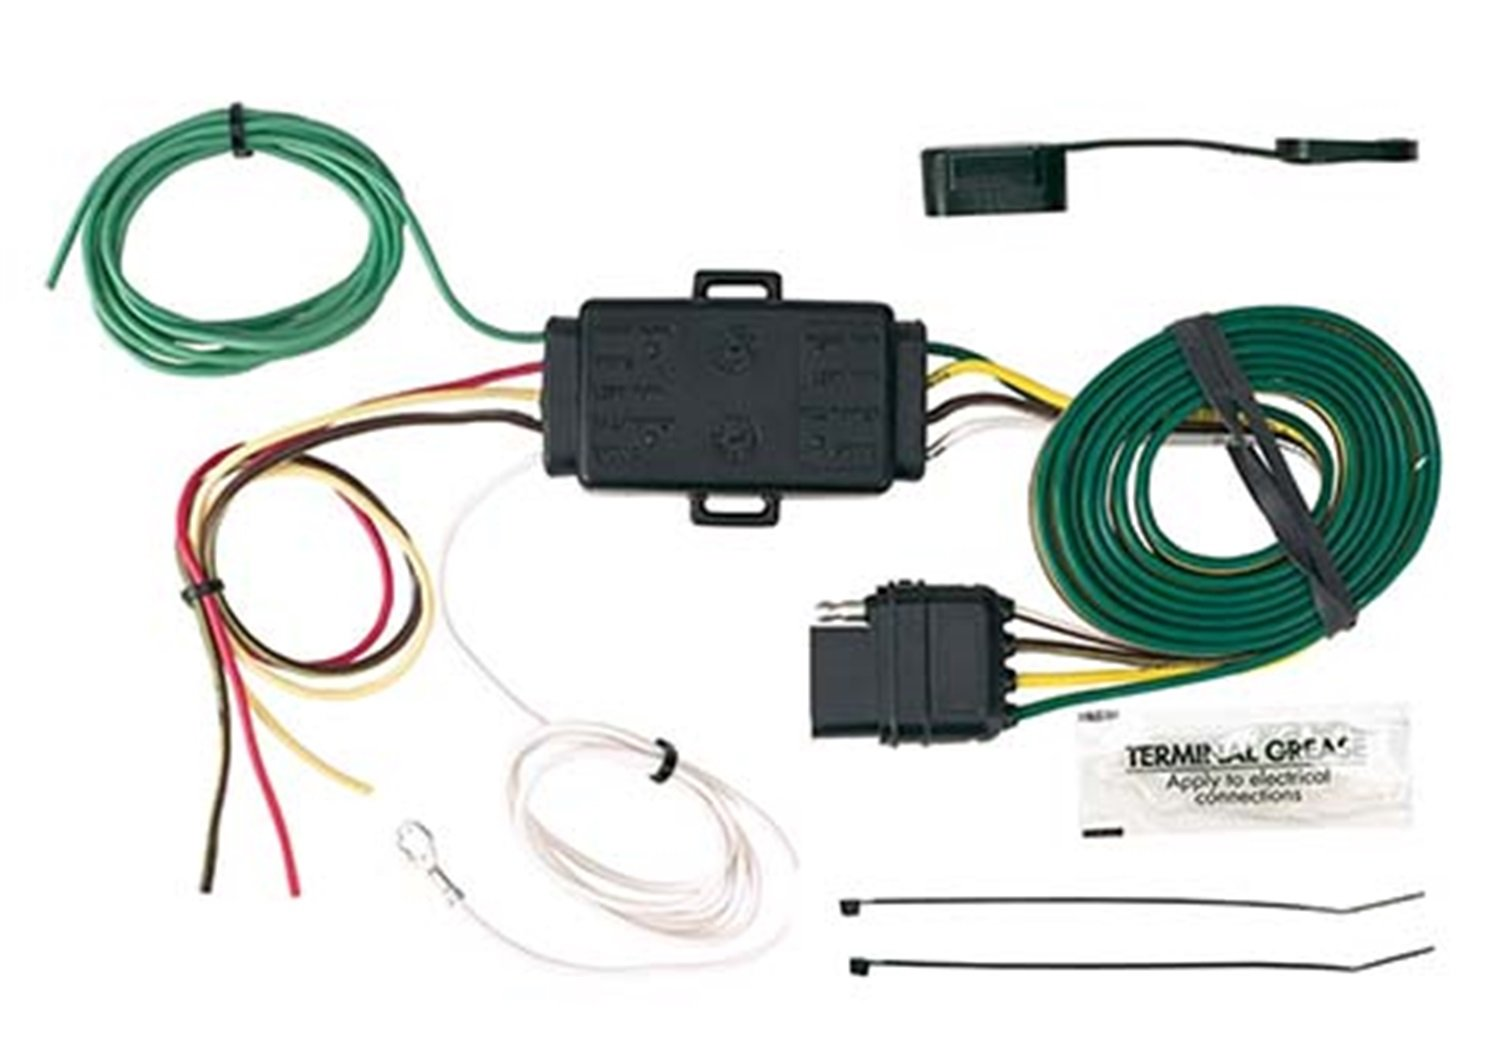 Hopkins 48895 Incandescent Led Taillight Converter Addition Trailer Wiring Harness Adapter On Car Automotive